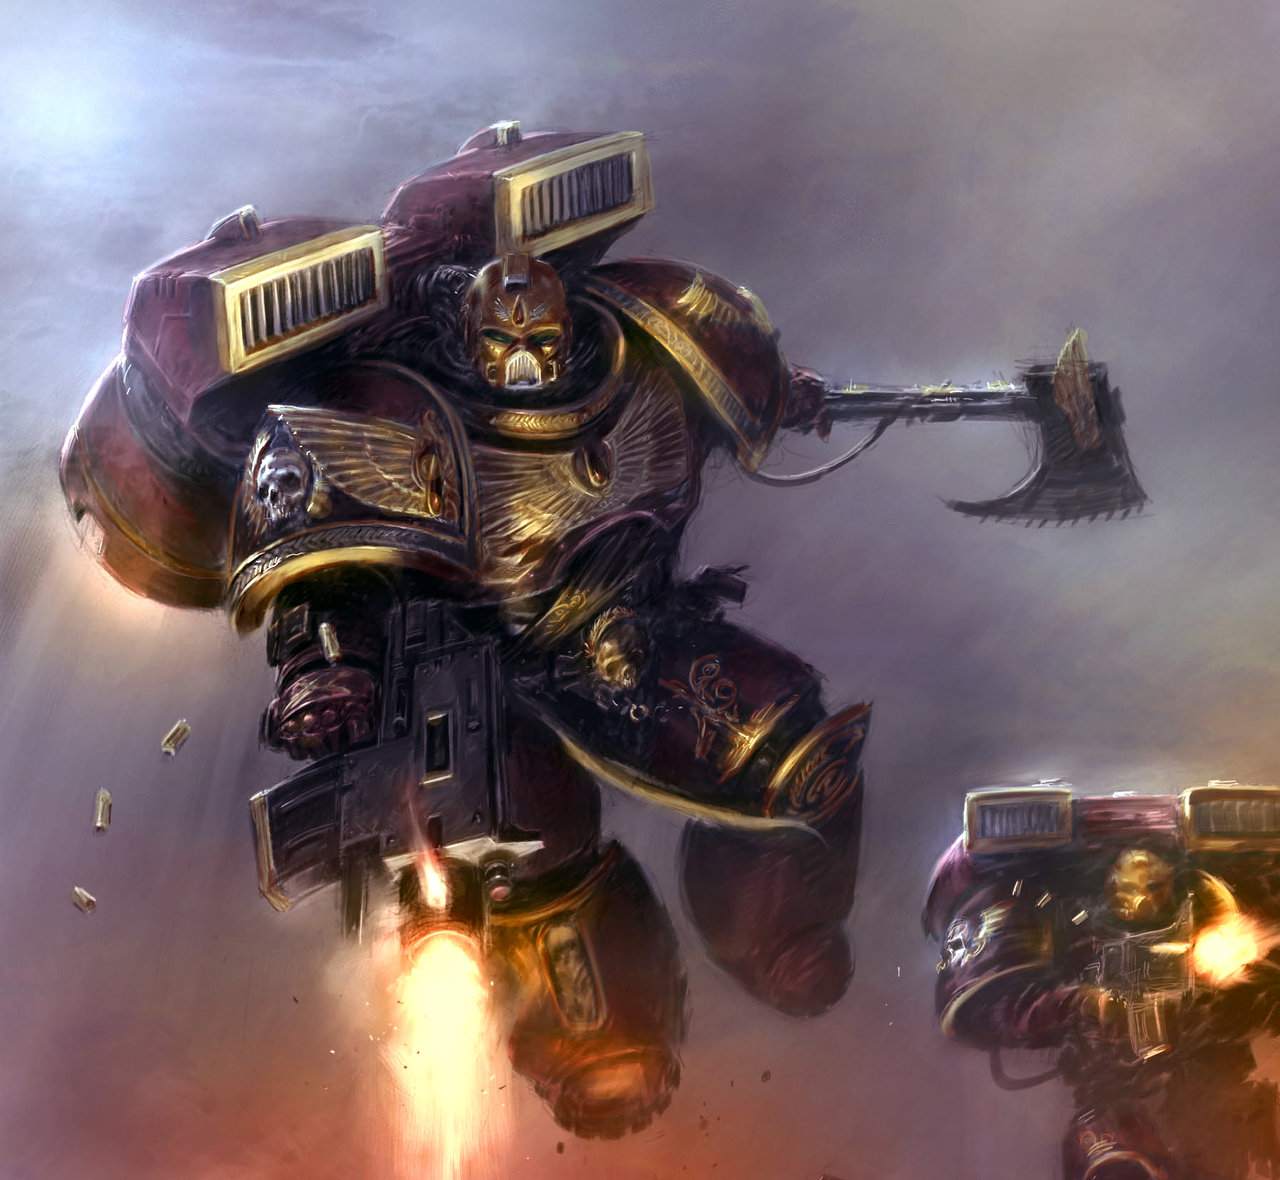 Warhammer 40k death company wallpaper - The Good The Bad And The Insulting Black Crusade Angel S Blade Part 2 The Rules Warhammer 40 000 Campaign Book Review 7th Edition